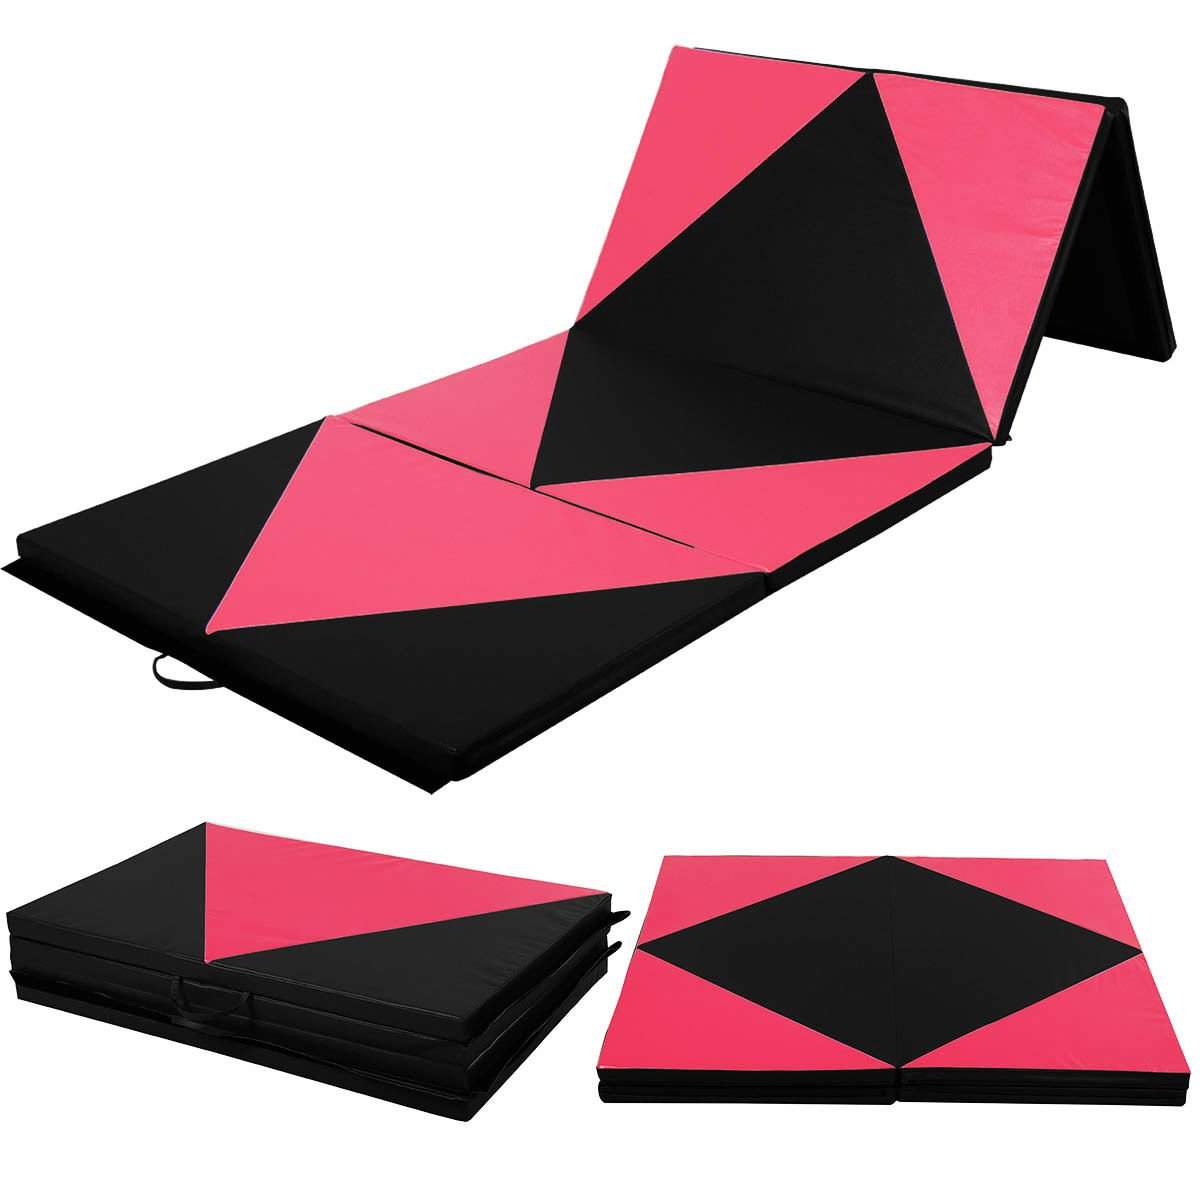 COSTWAY 4'X10'X2 Gymnastics Mat Folding Panel Thick Gym Fitness Exercise Pink/Black New by COSTWAY